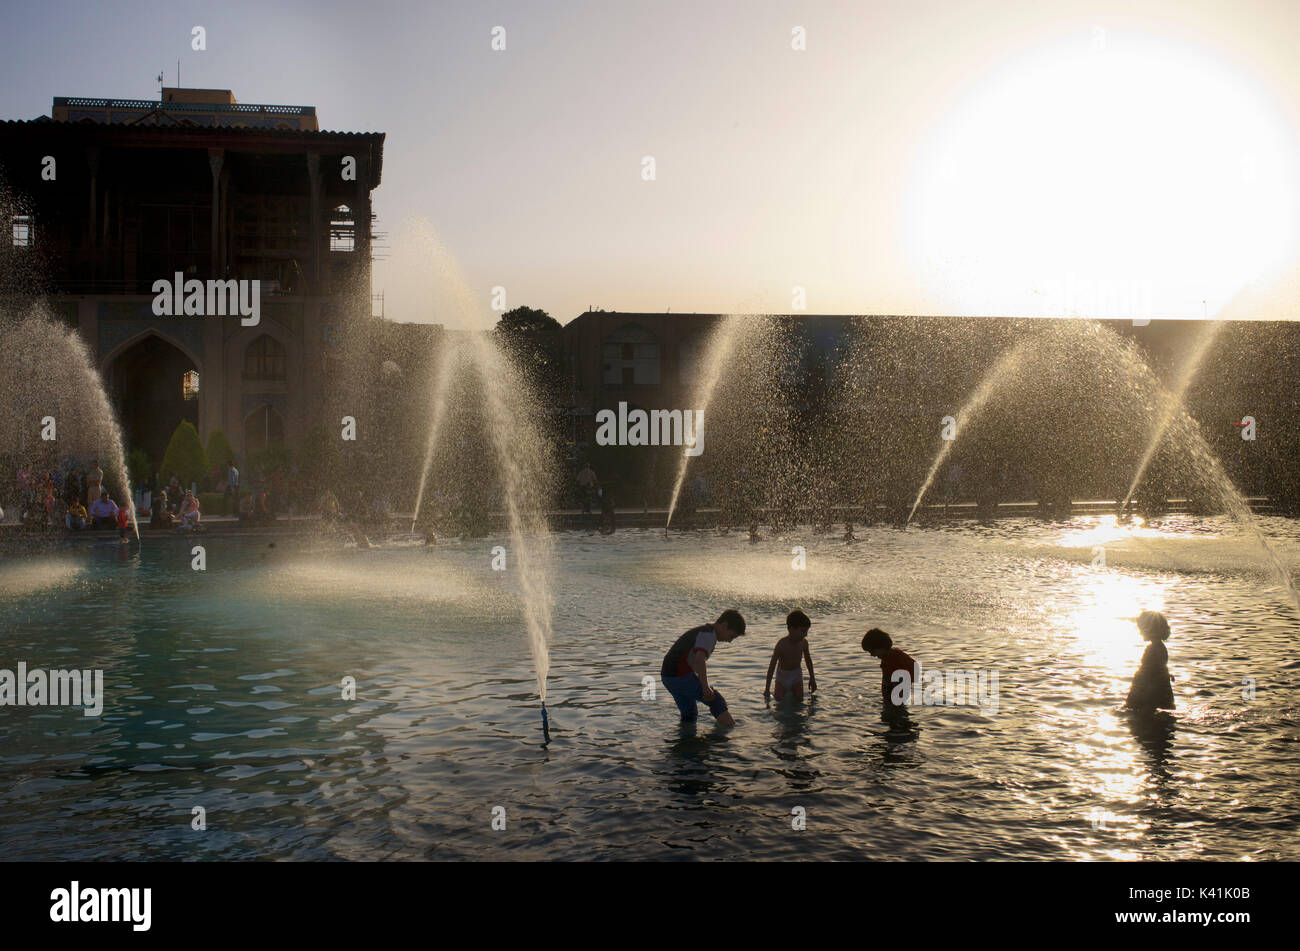 Kids playing in the public fountains in front of Ali Qapu Palace, Imam square. Naqsh-e Jahan  Isfahan city, Iran Stock Photo